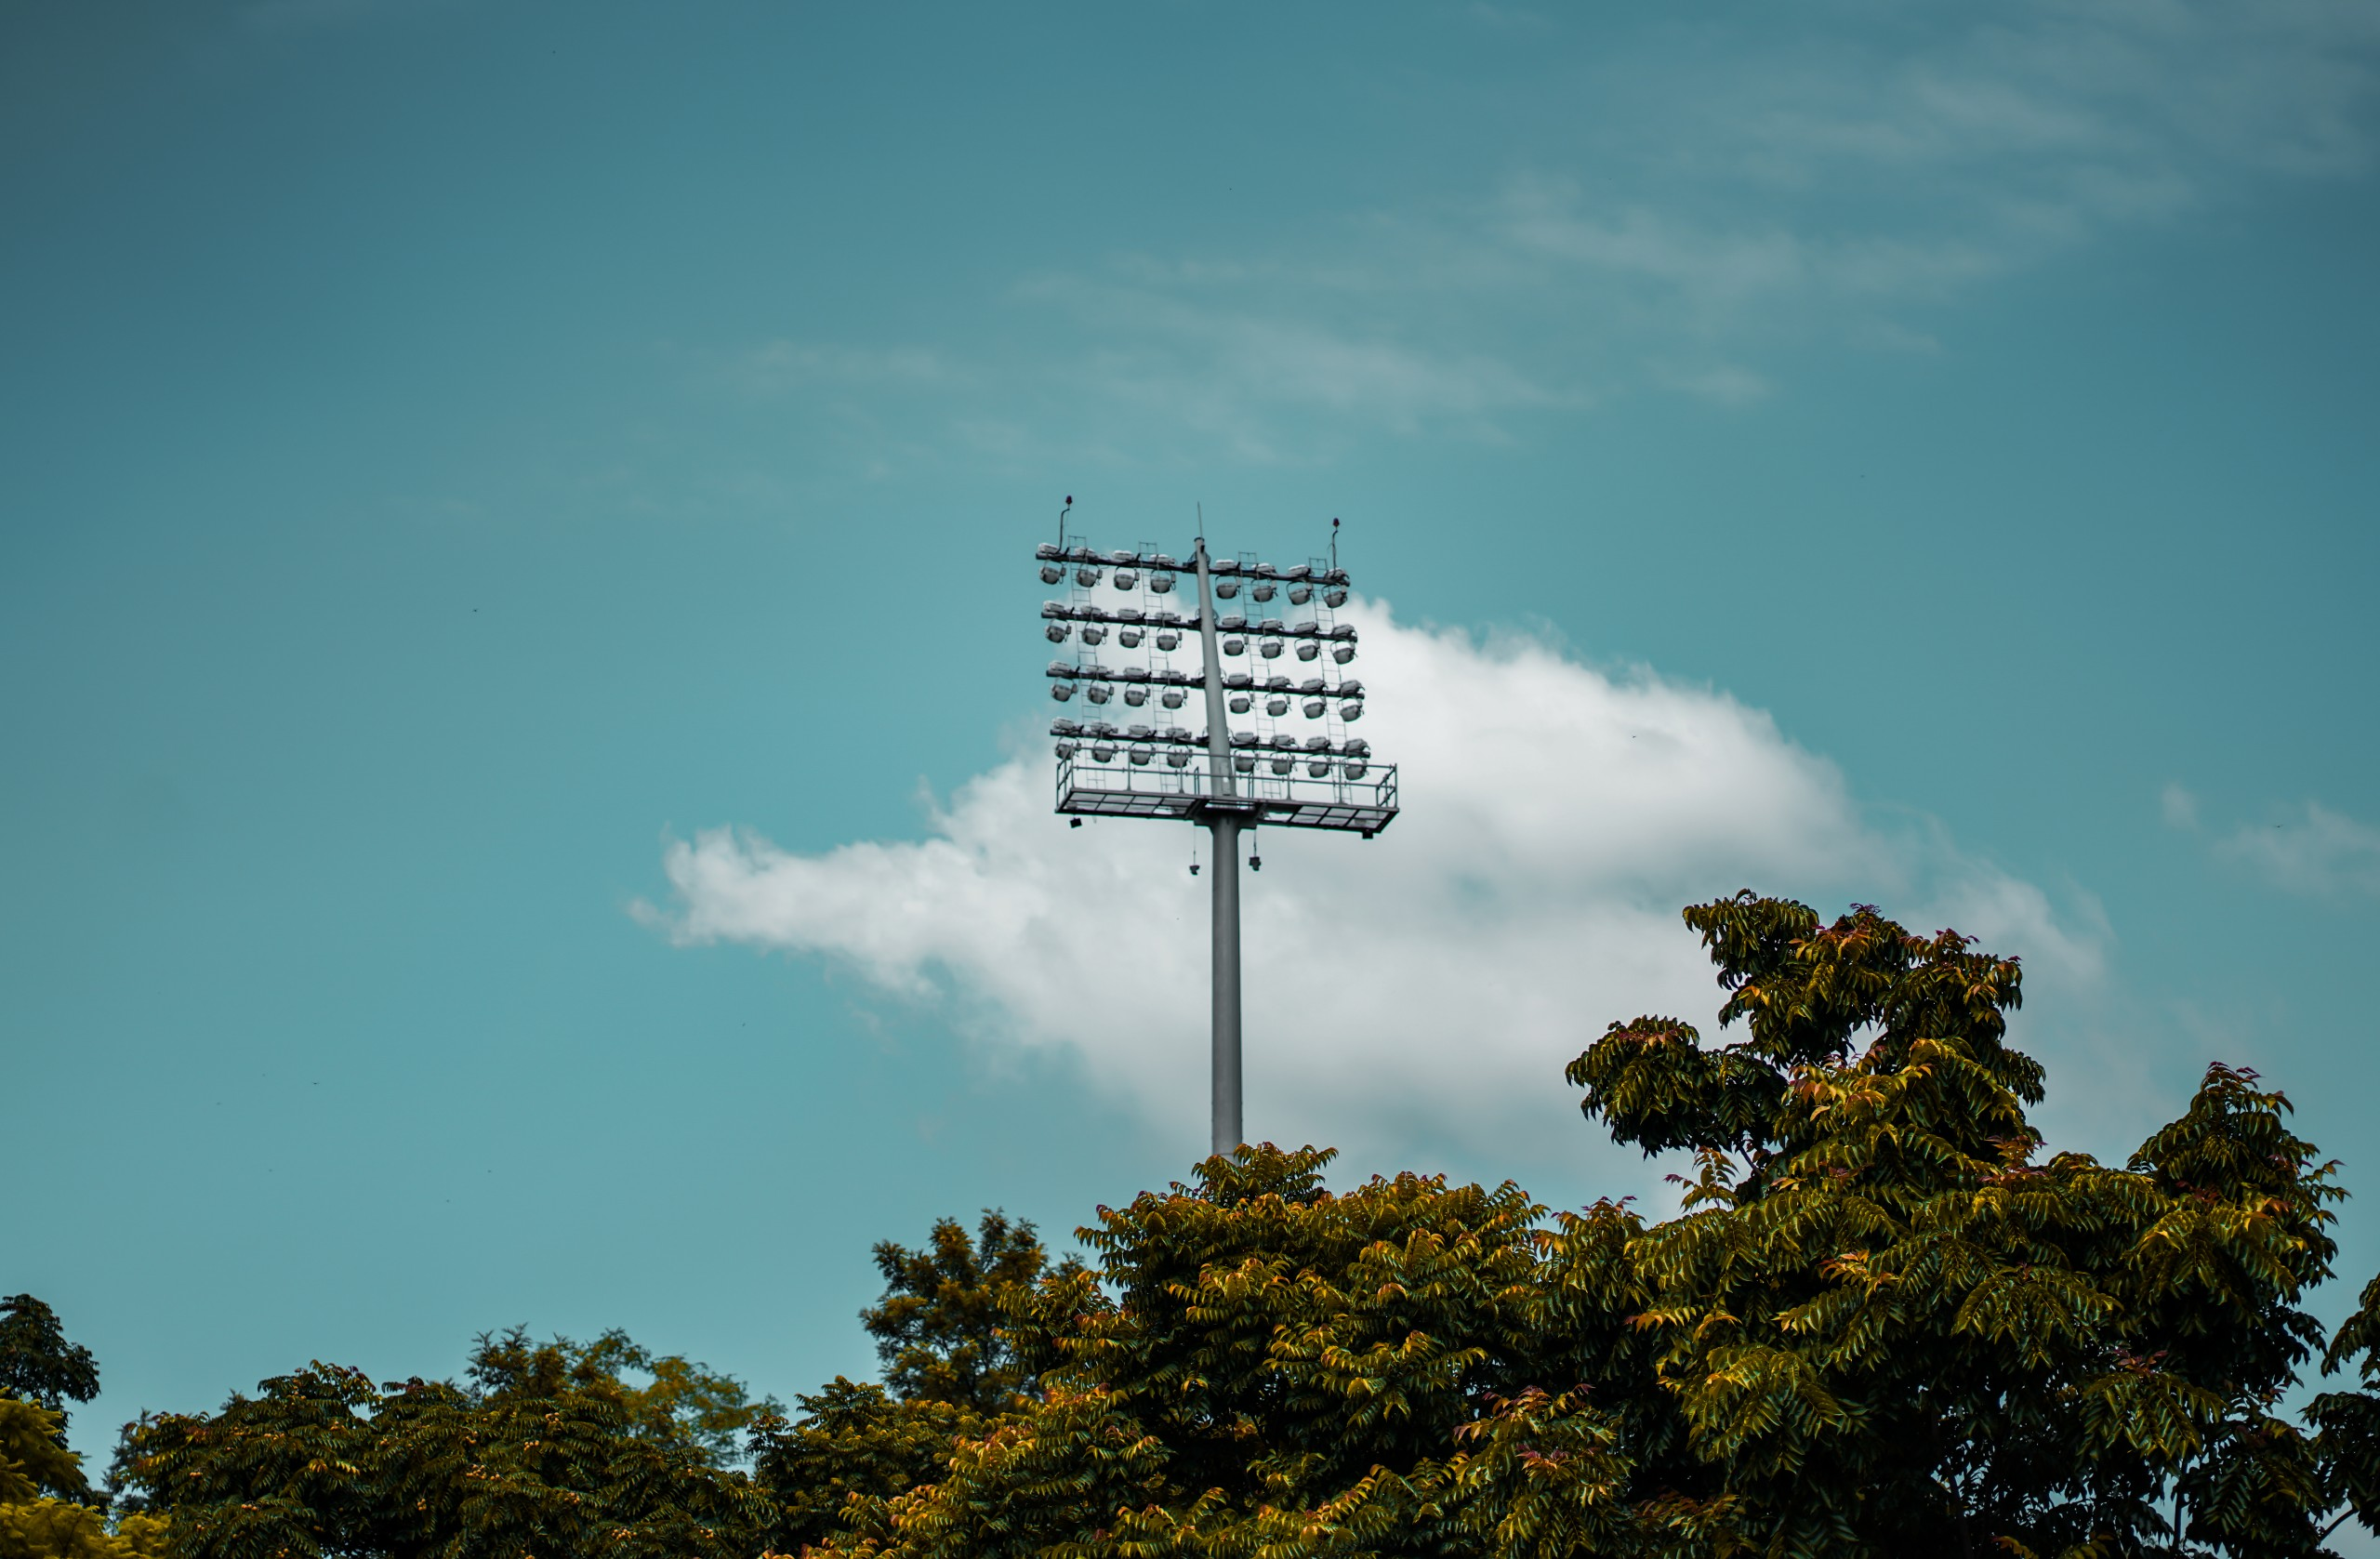 Cricket stadium lights and beautiful sky